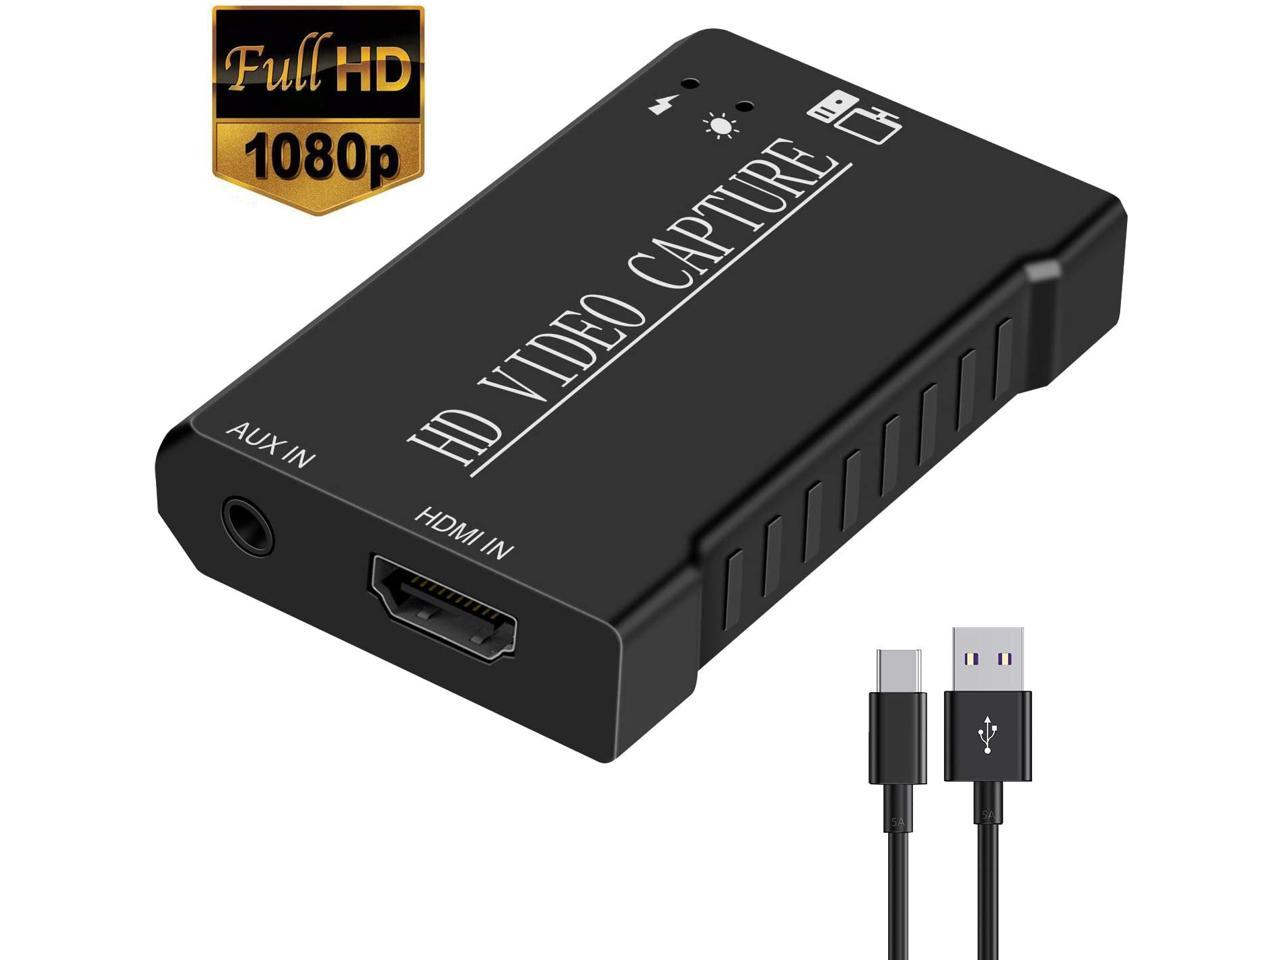 Live Streaming Broadcasting Audio Video Capture Cards HDMI to USB 2.0 Full HD 1080P 60FPS for Game Recording